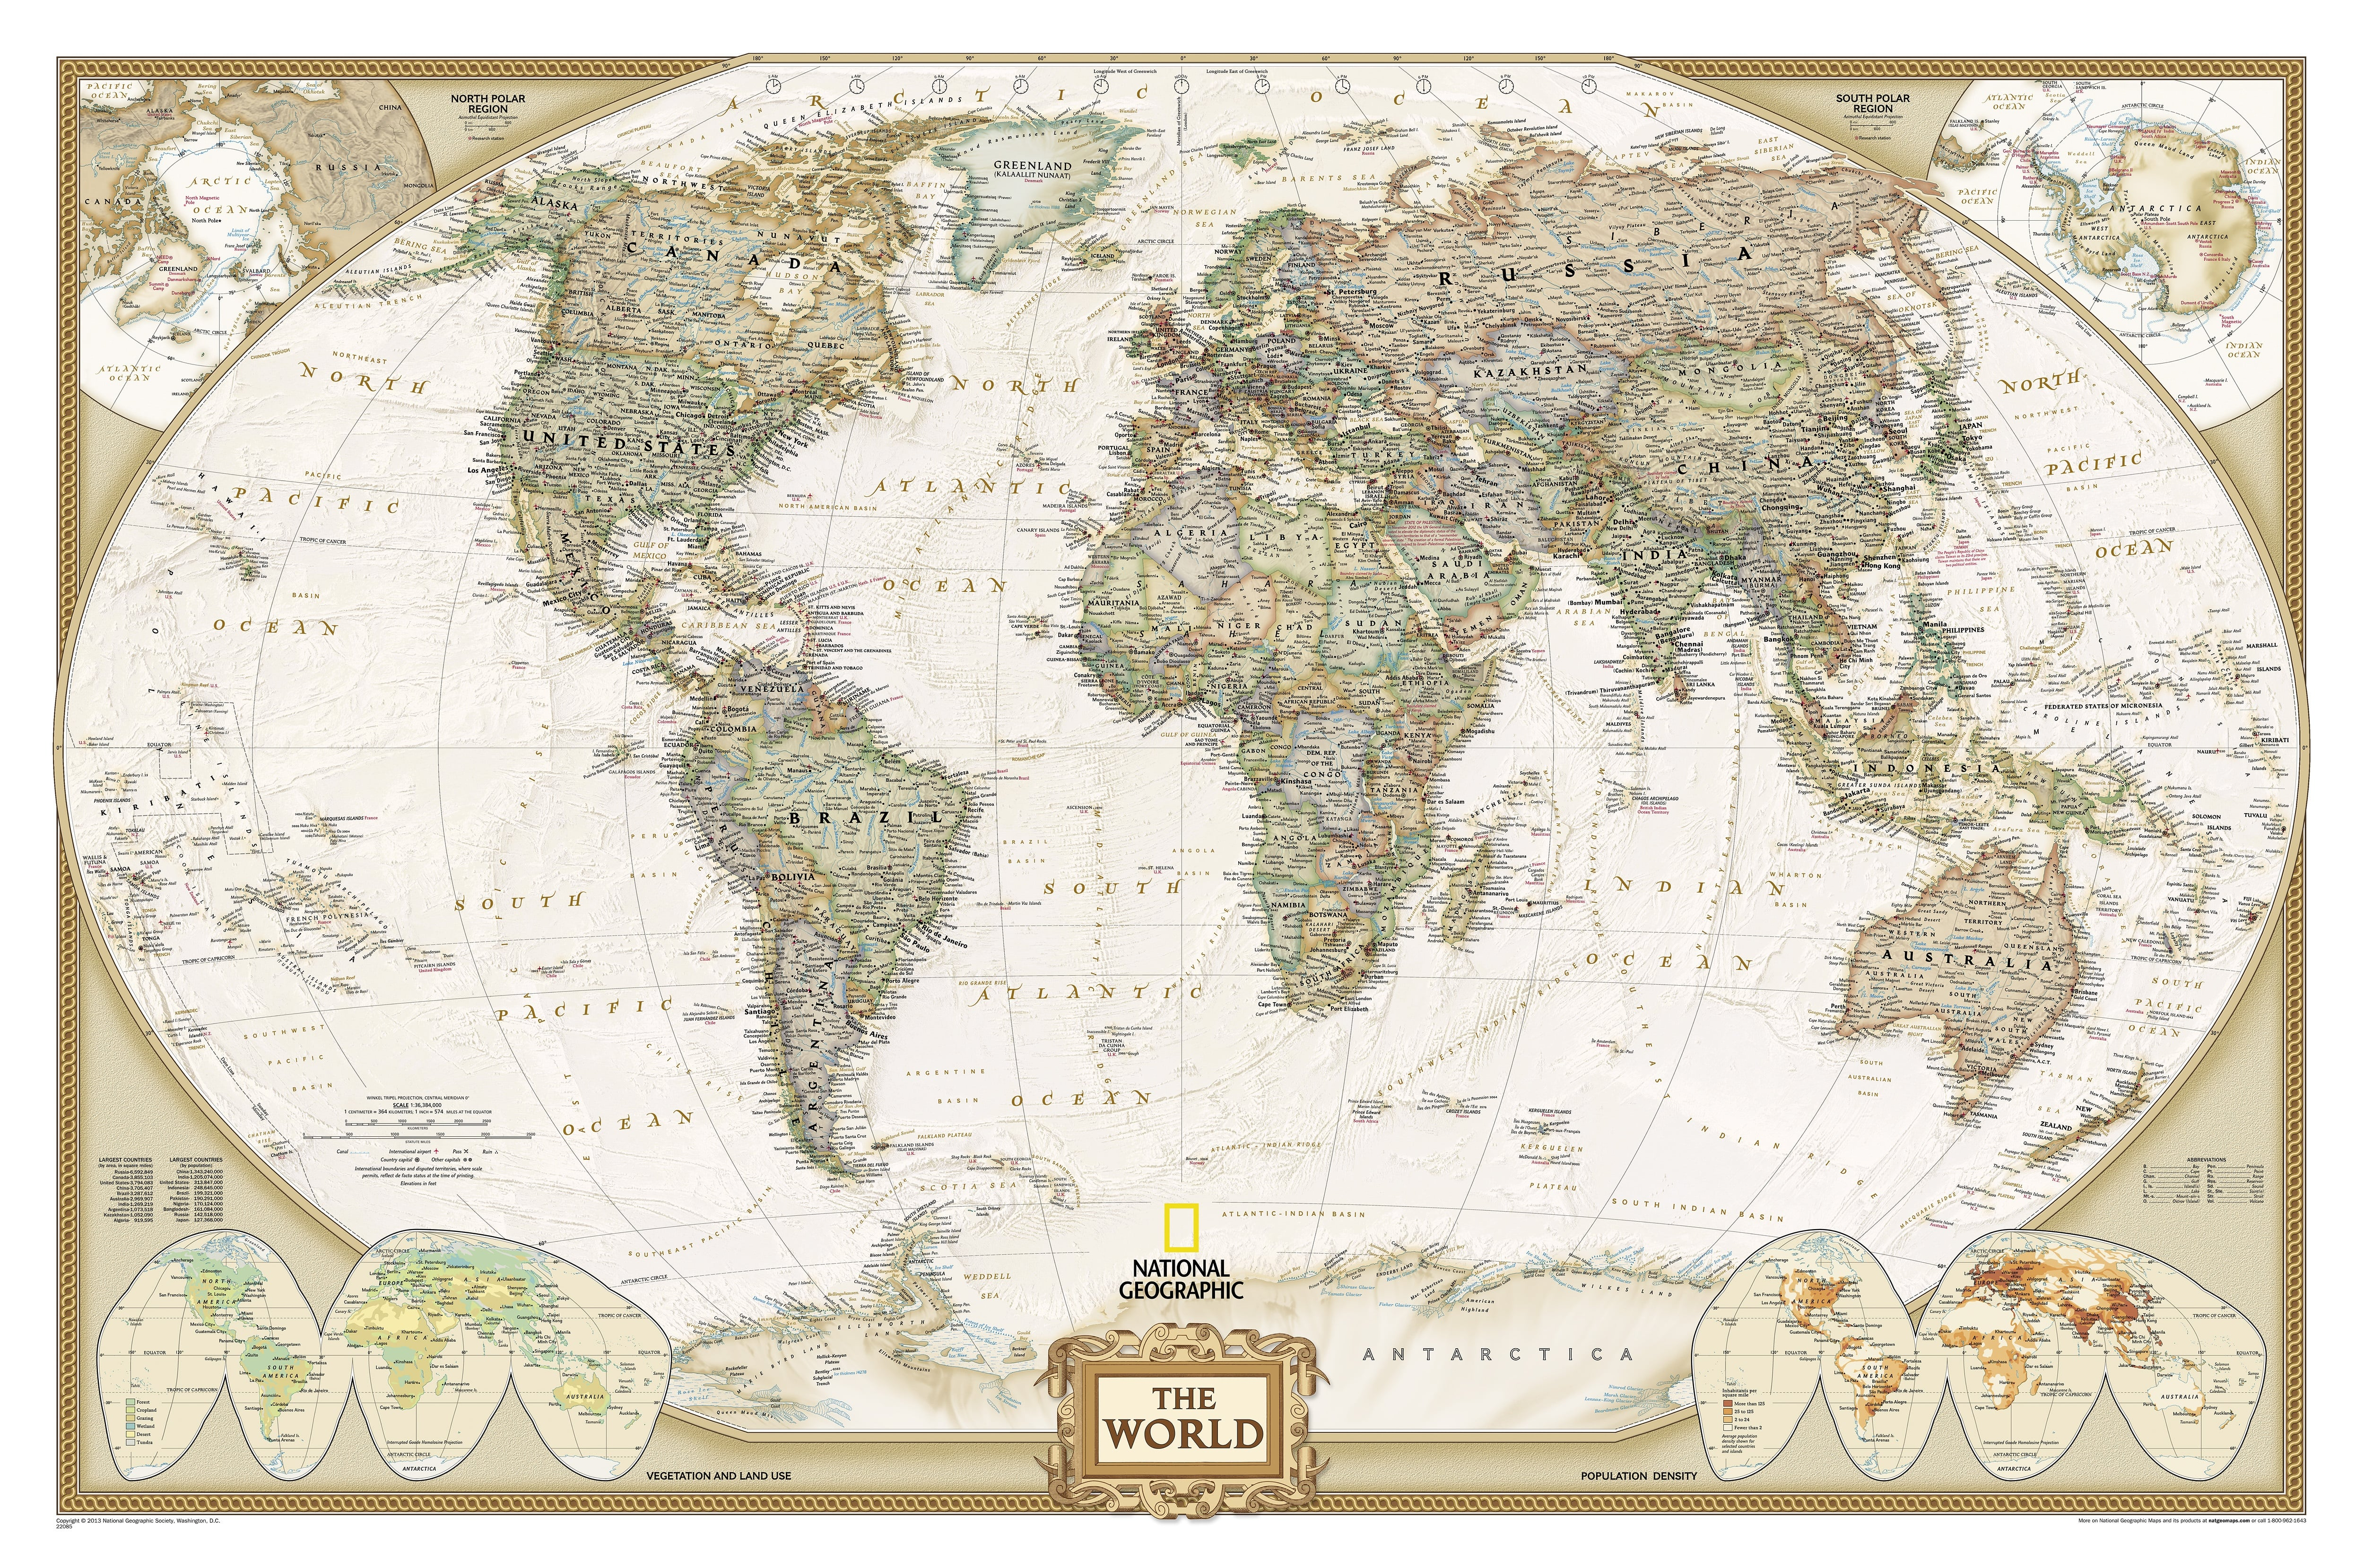 National geographic world map poster antique tones wall map gumiabroncs Gallery